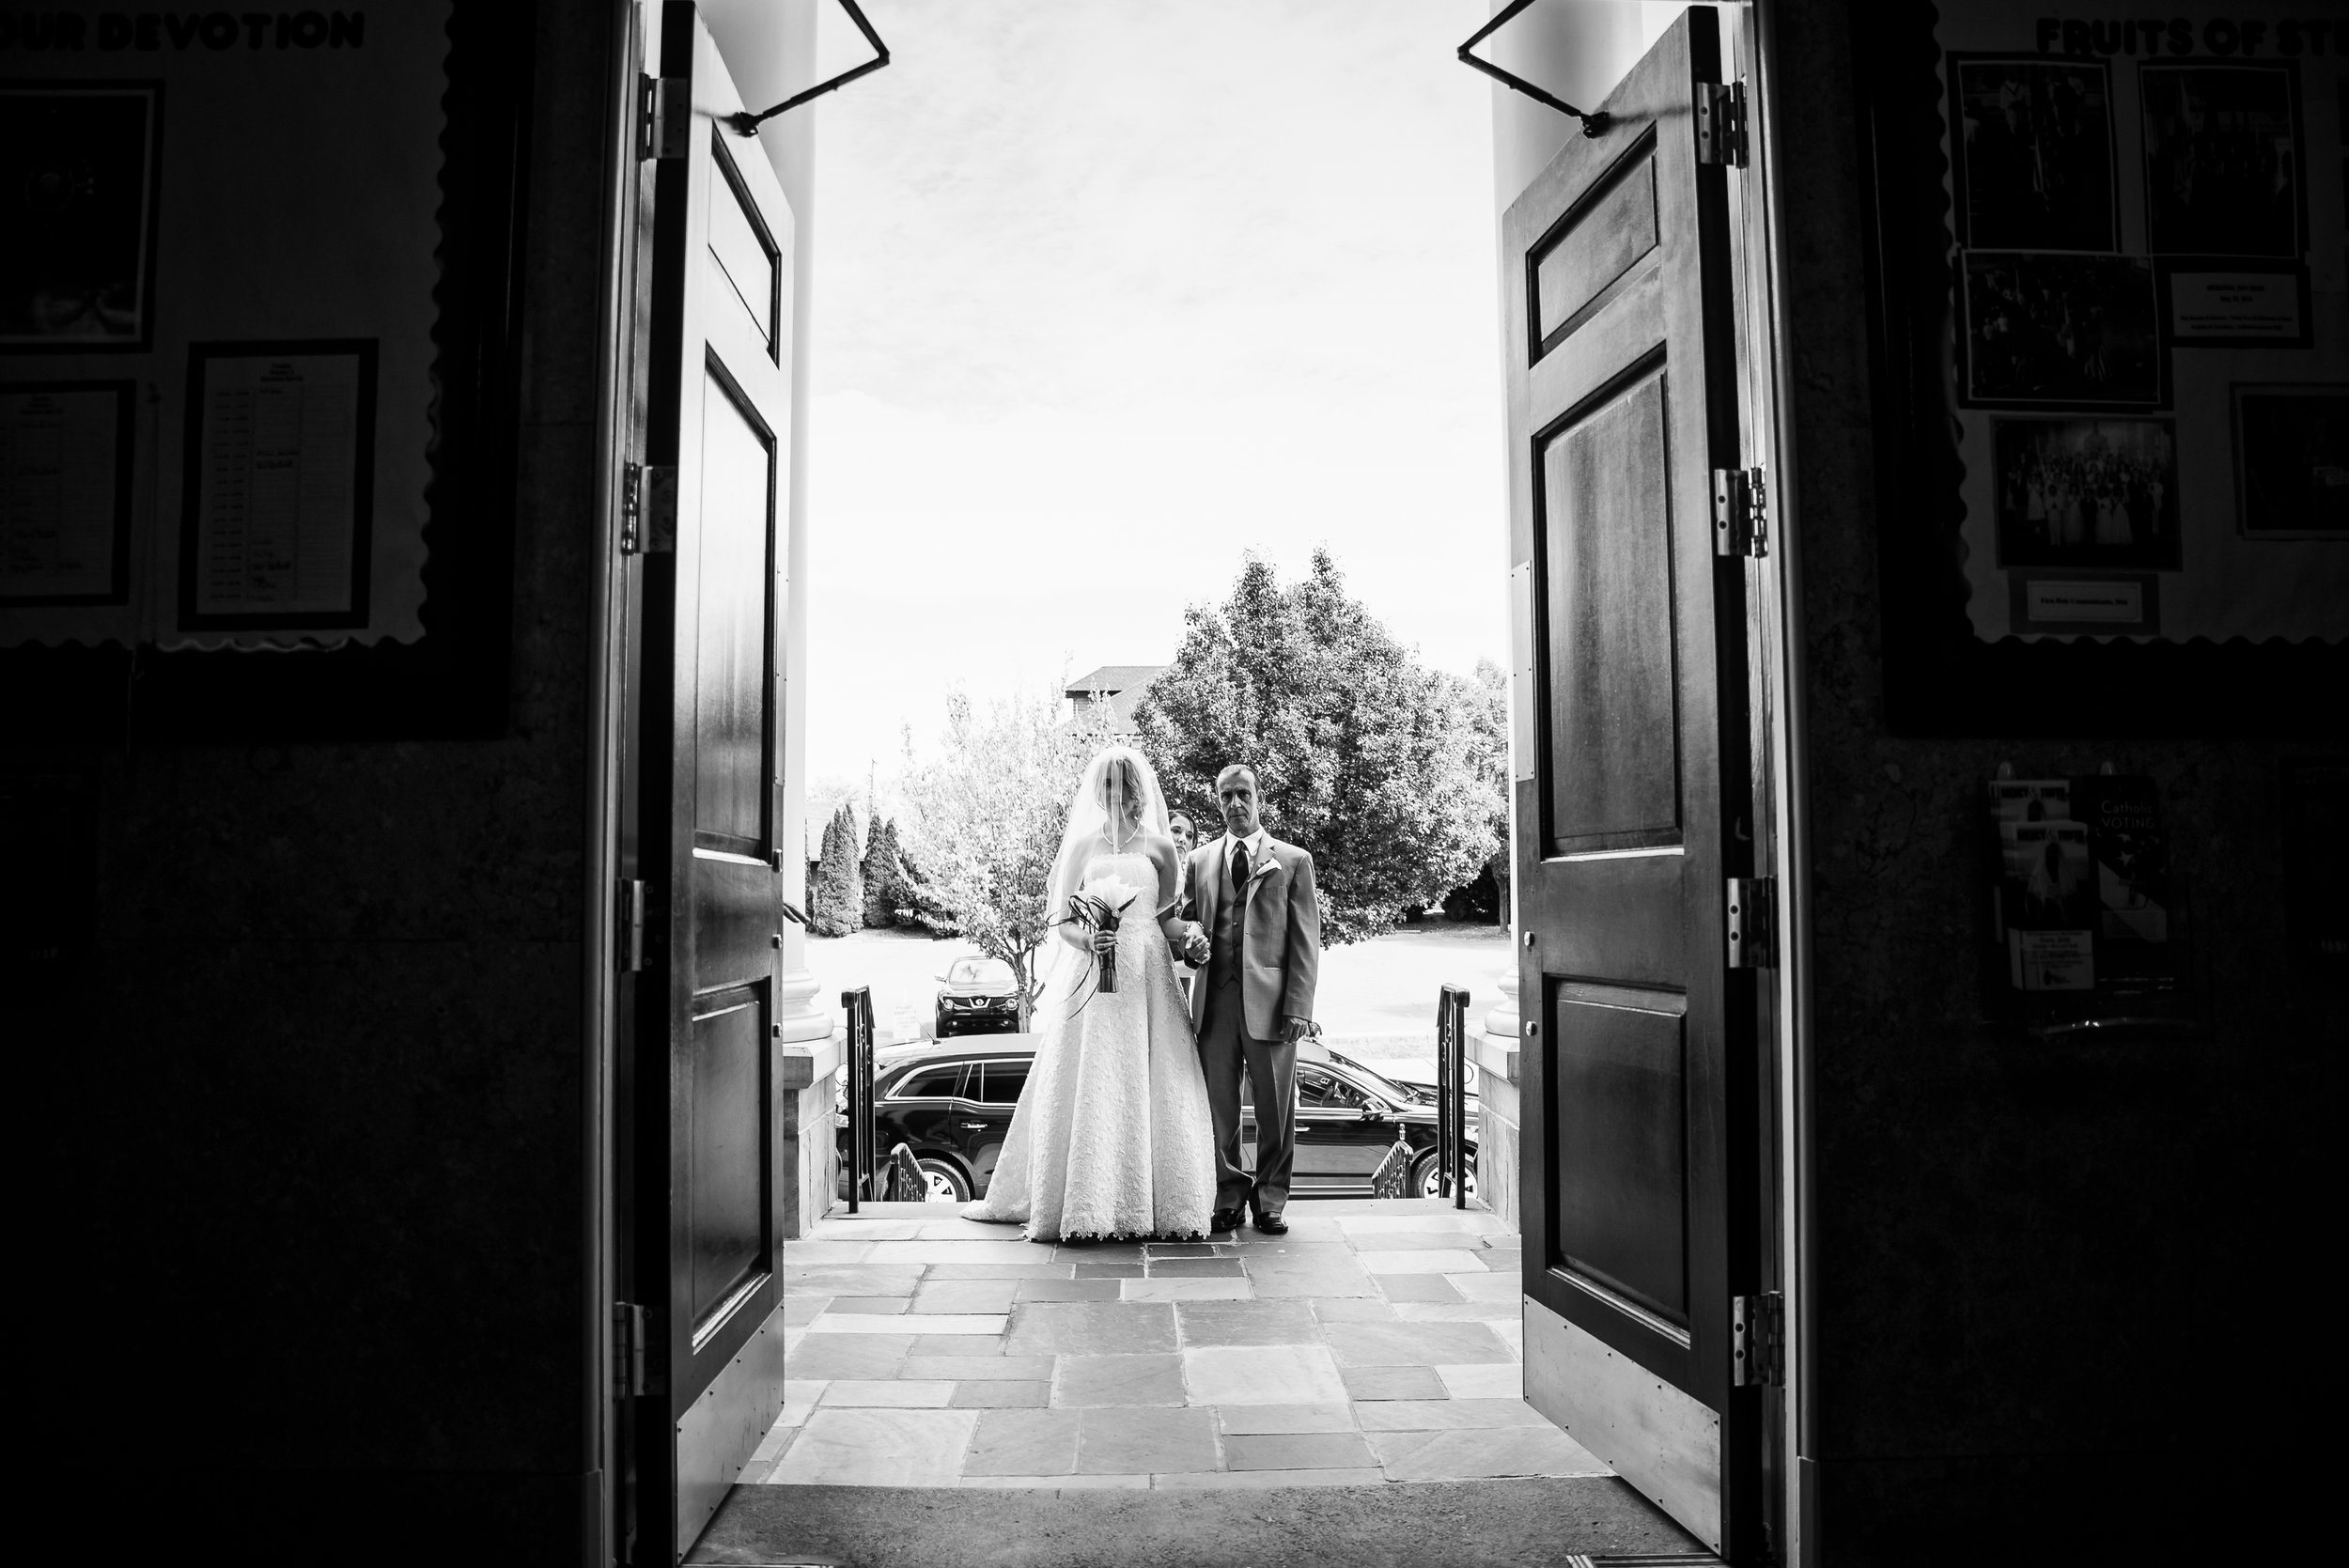 Karlenis-Juancarlos-Wedding-Garcia-Photography-6664.jpg